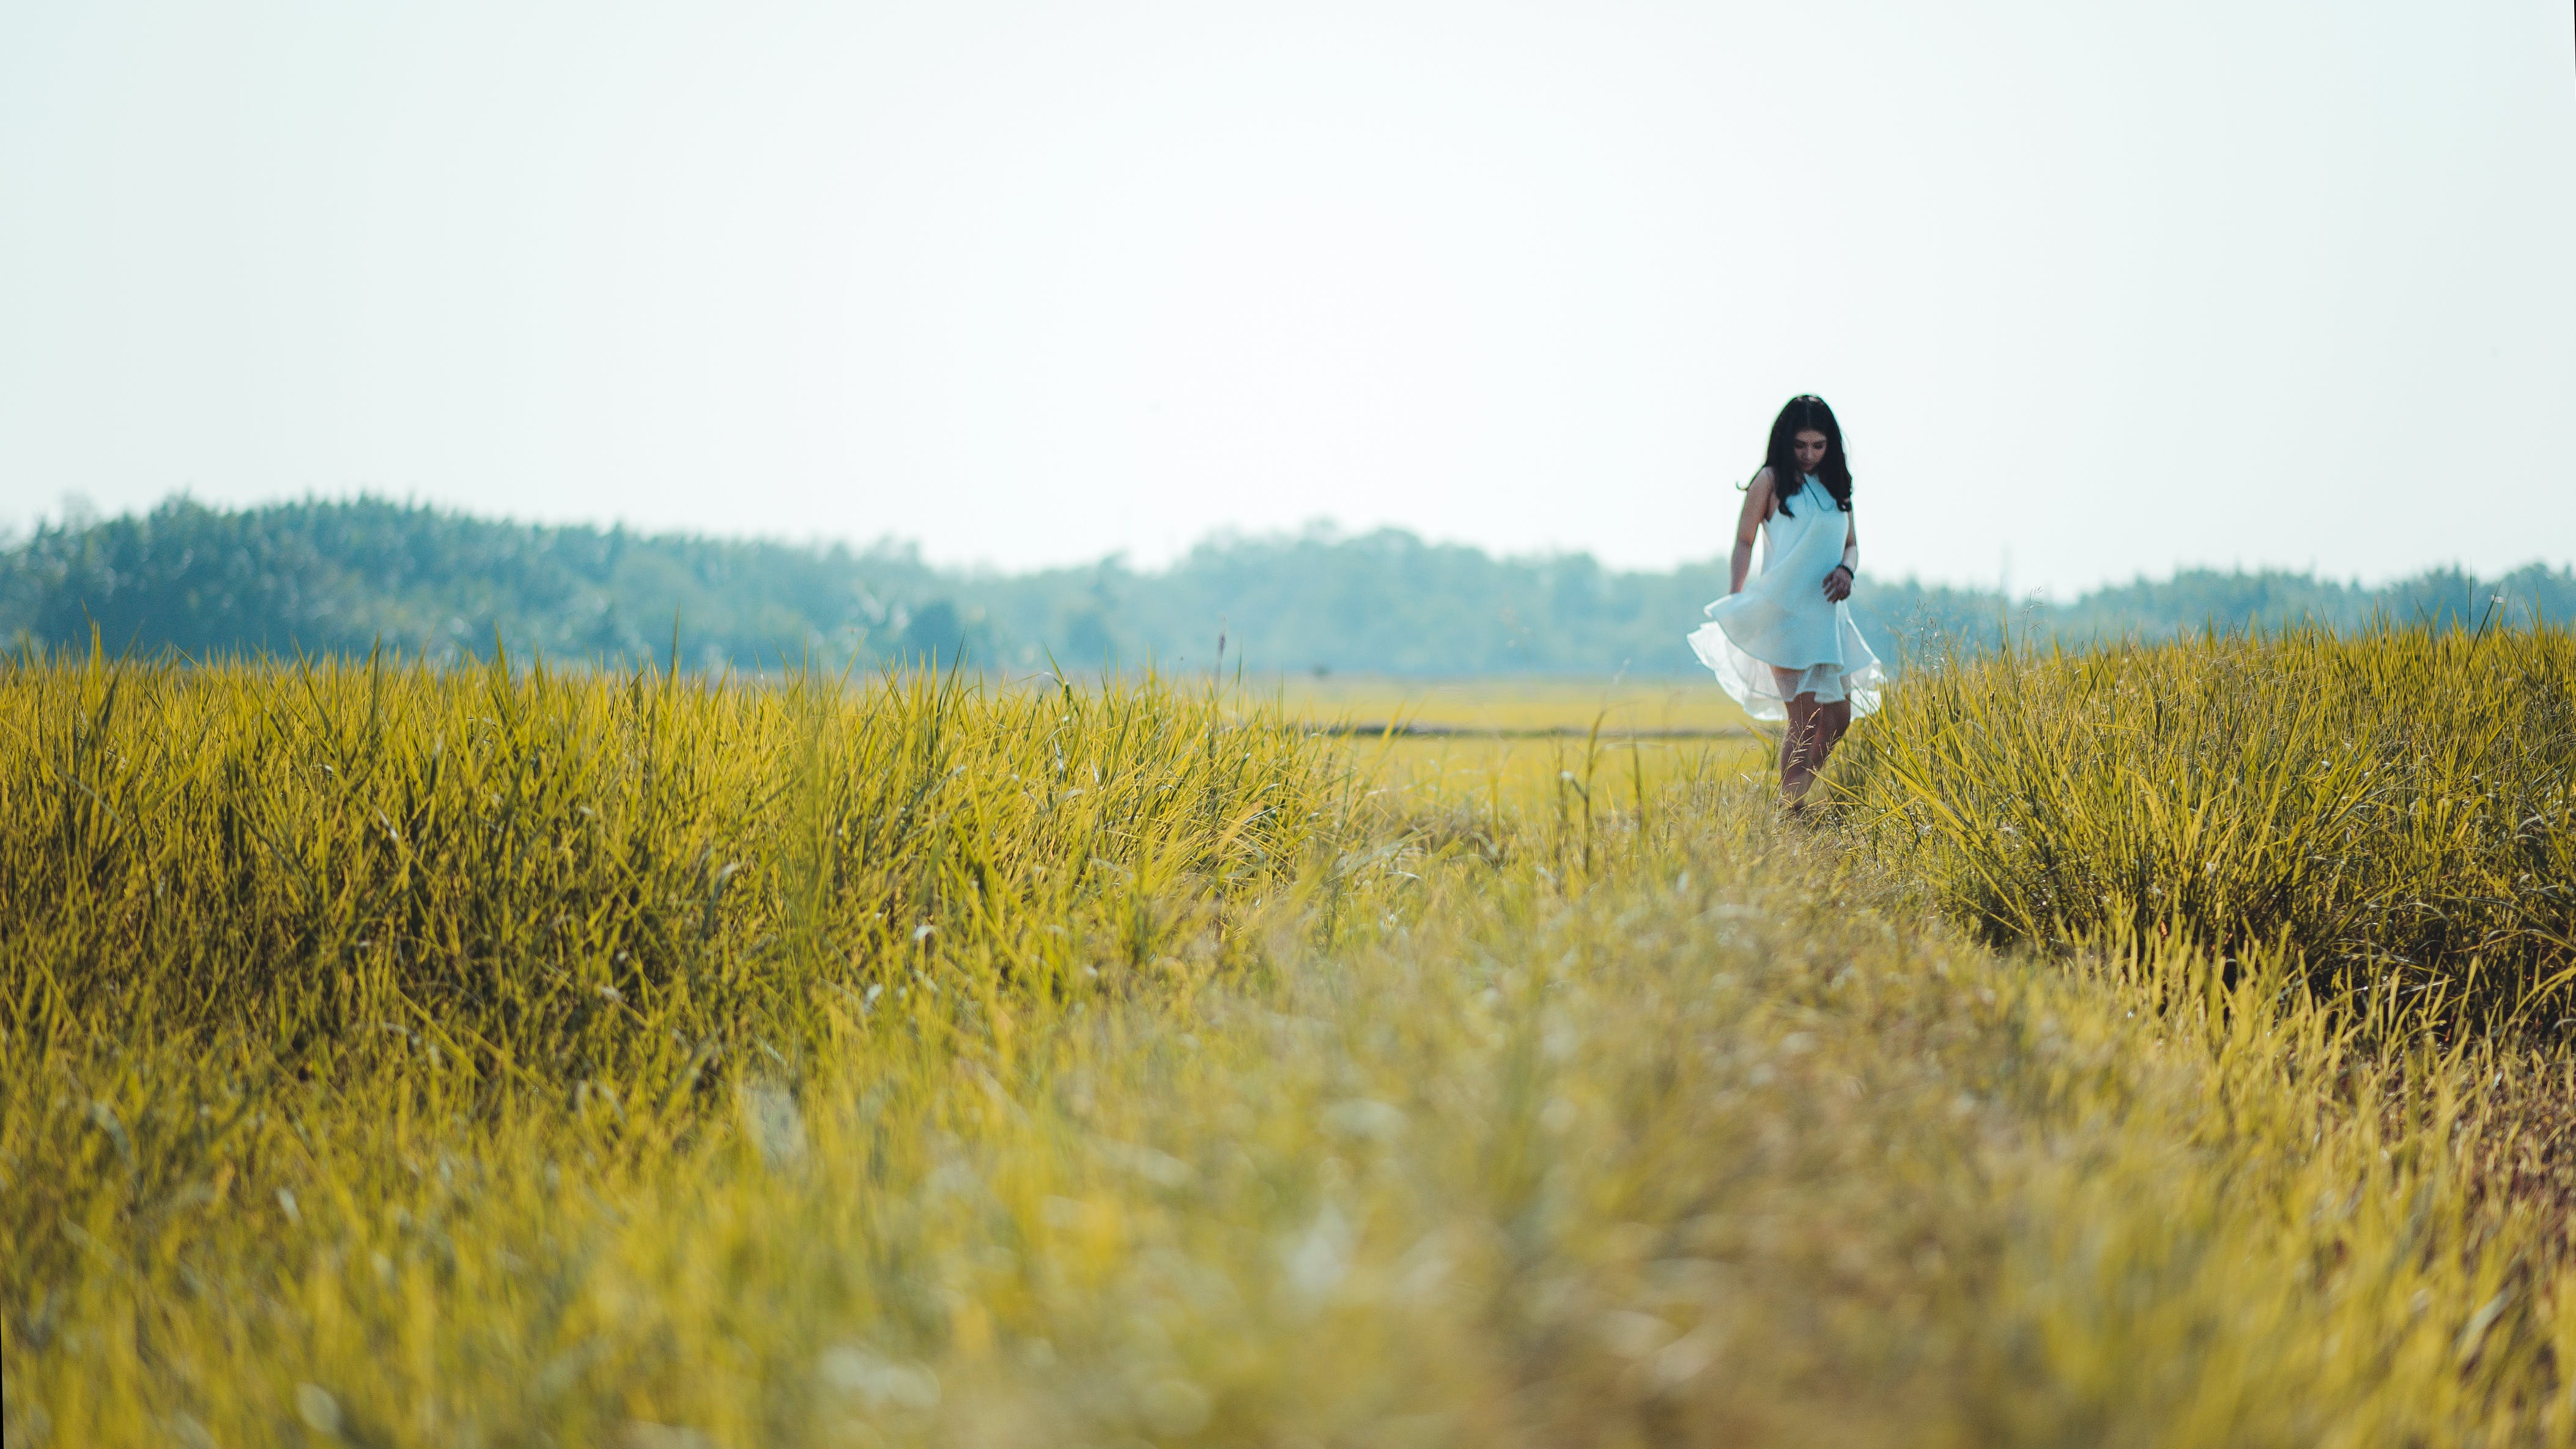 Depth of Field Photography of Woman Wearing White Sleeveless Dress Standing on Green Grass Field